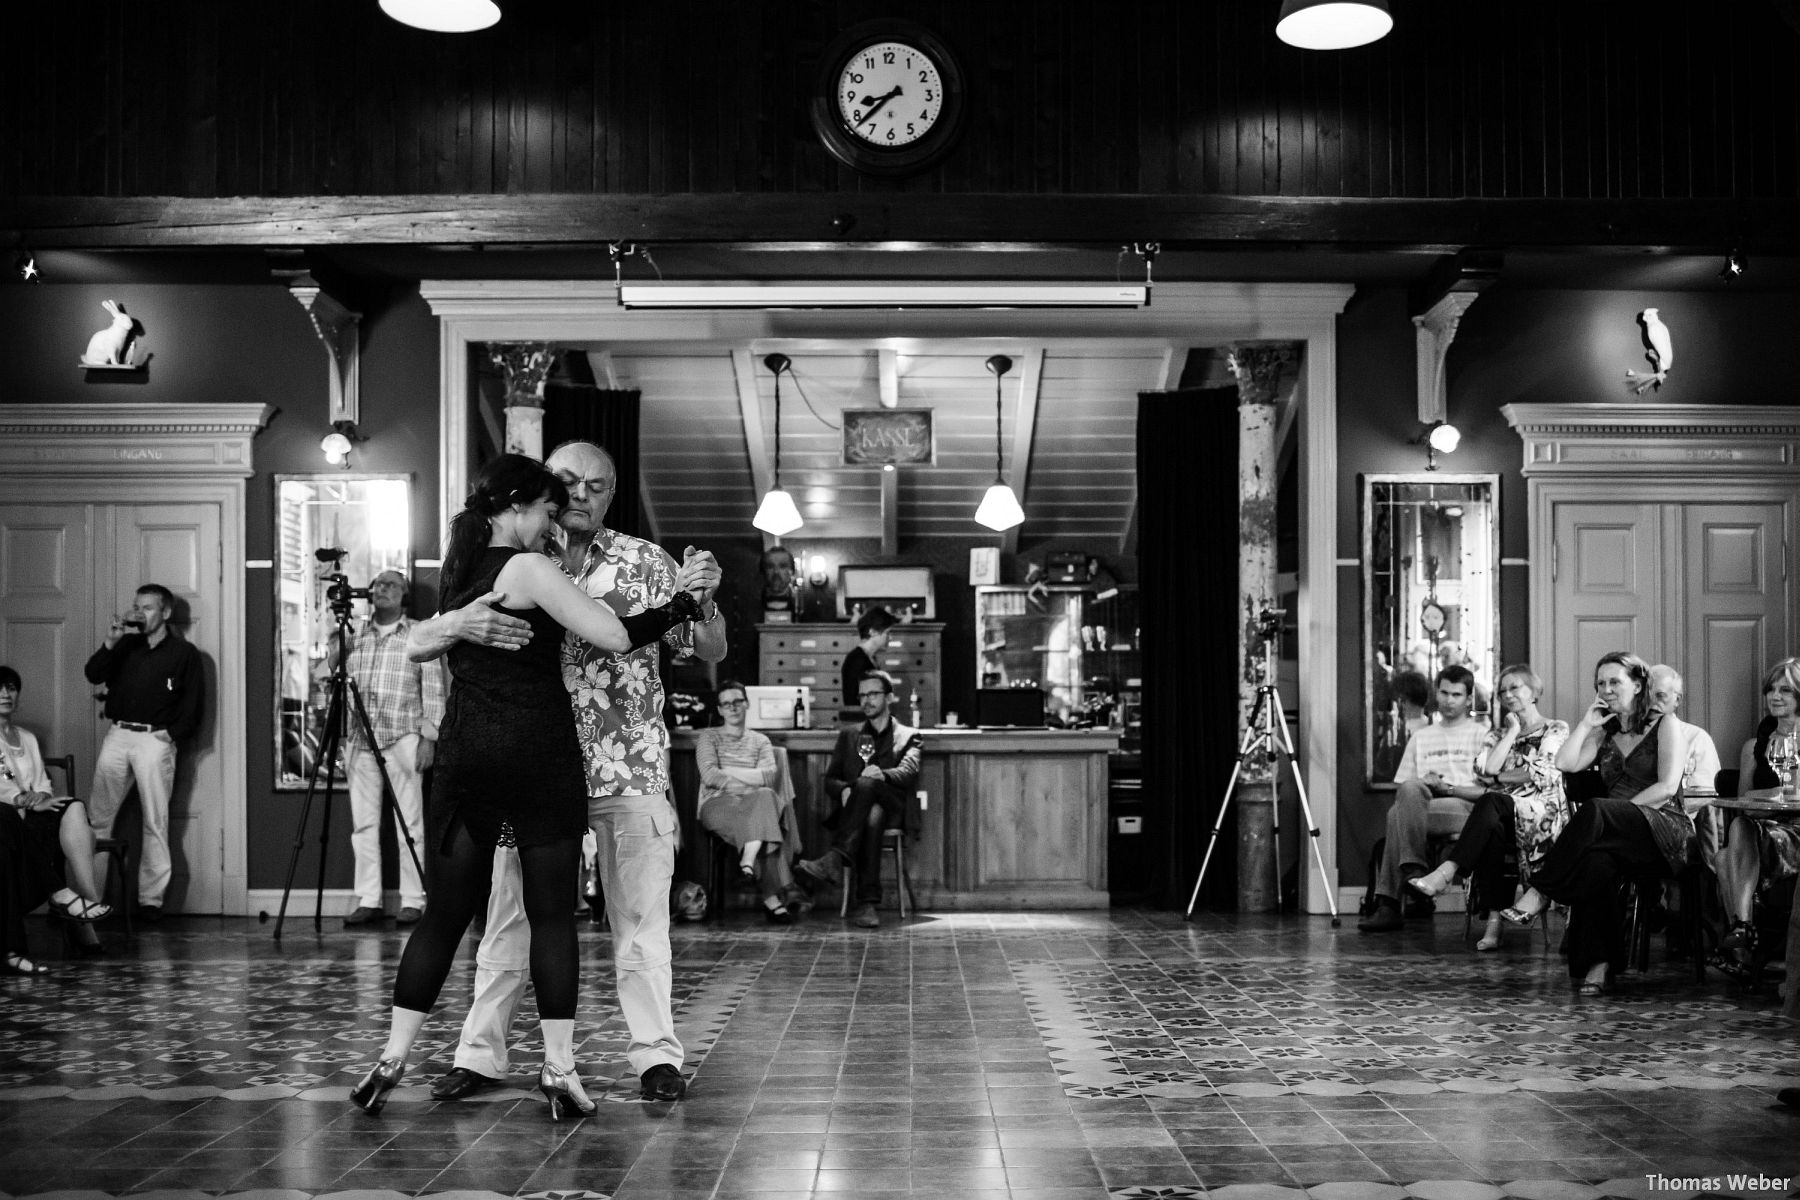 Fotograf Thomas Weber aus Oldenburg: Salsa- und Tango-Abende im Theater Laboratorium Oldenburg (3)